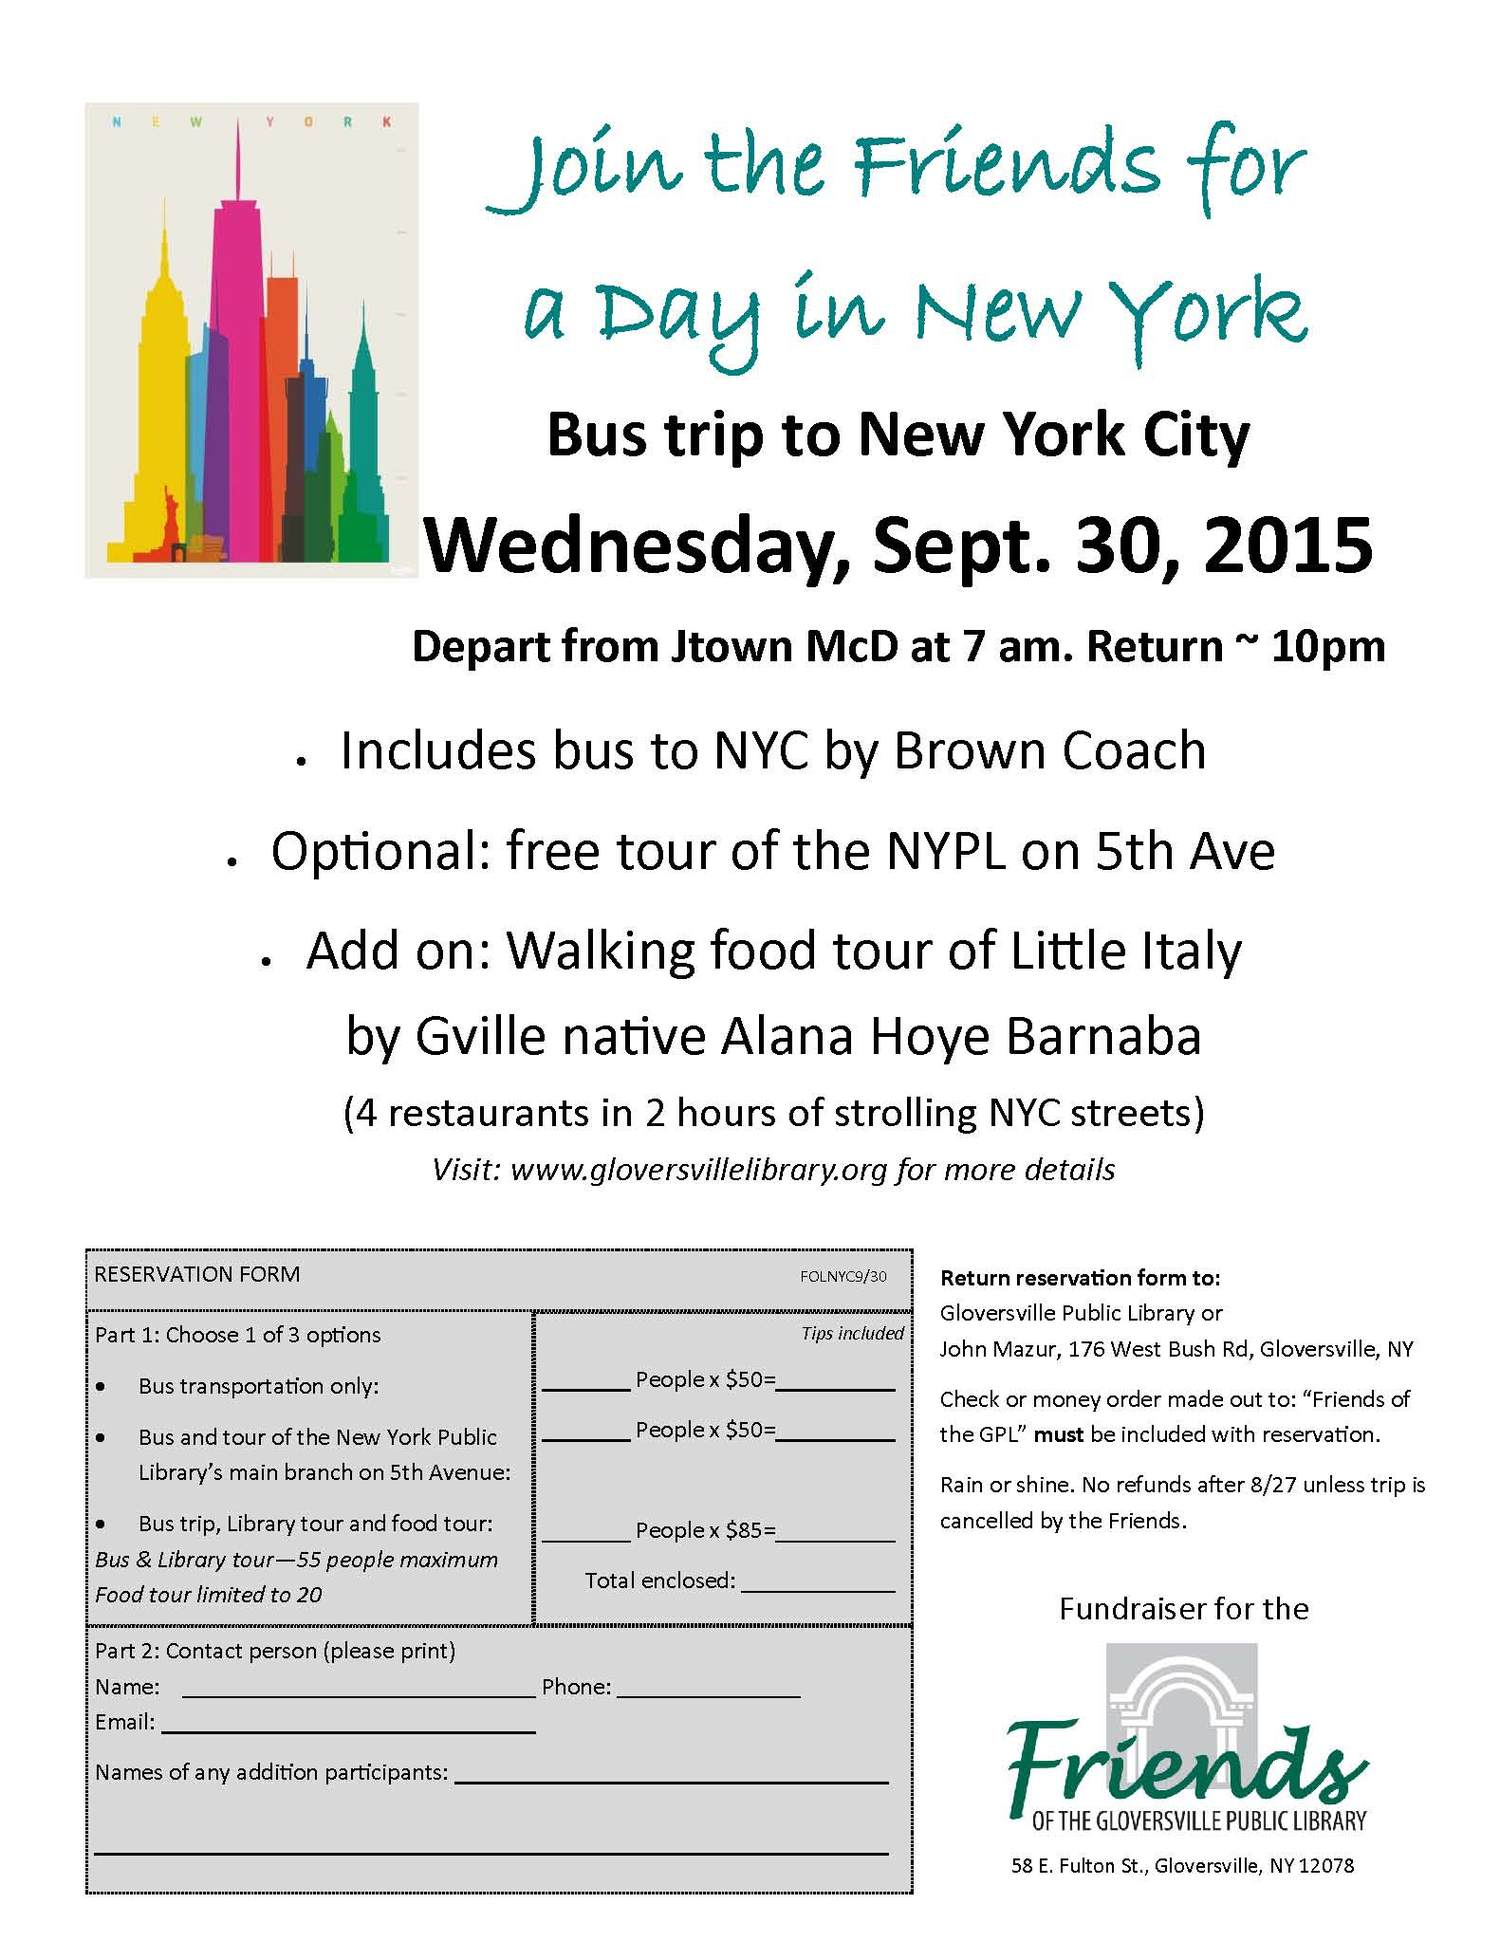 Join the Friends for a terrific trip to NYC — Gloversville